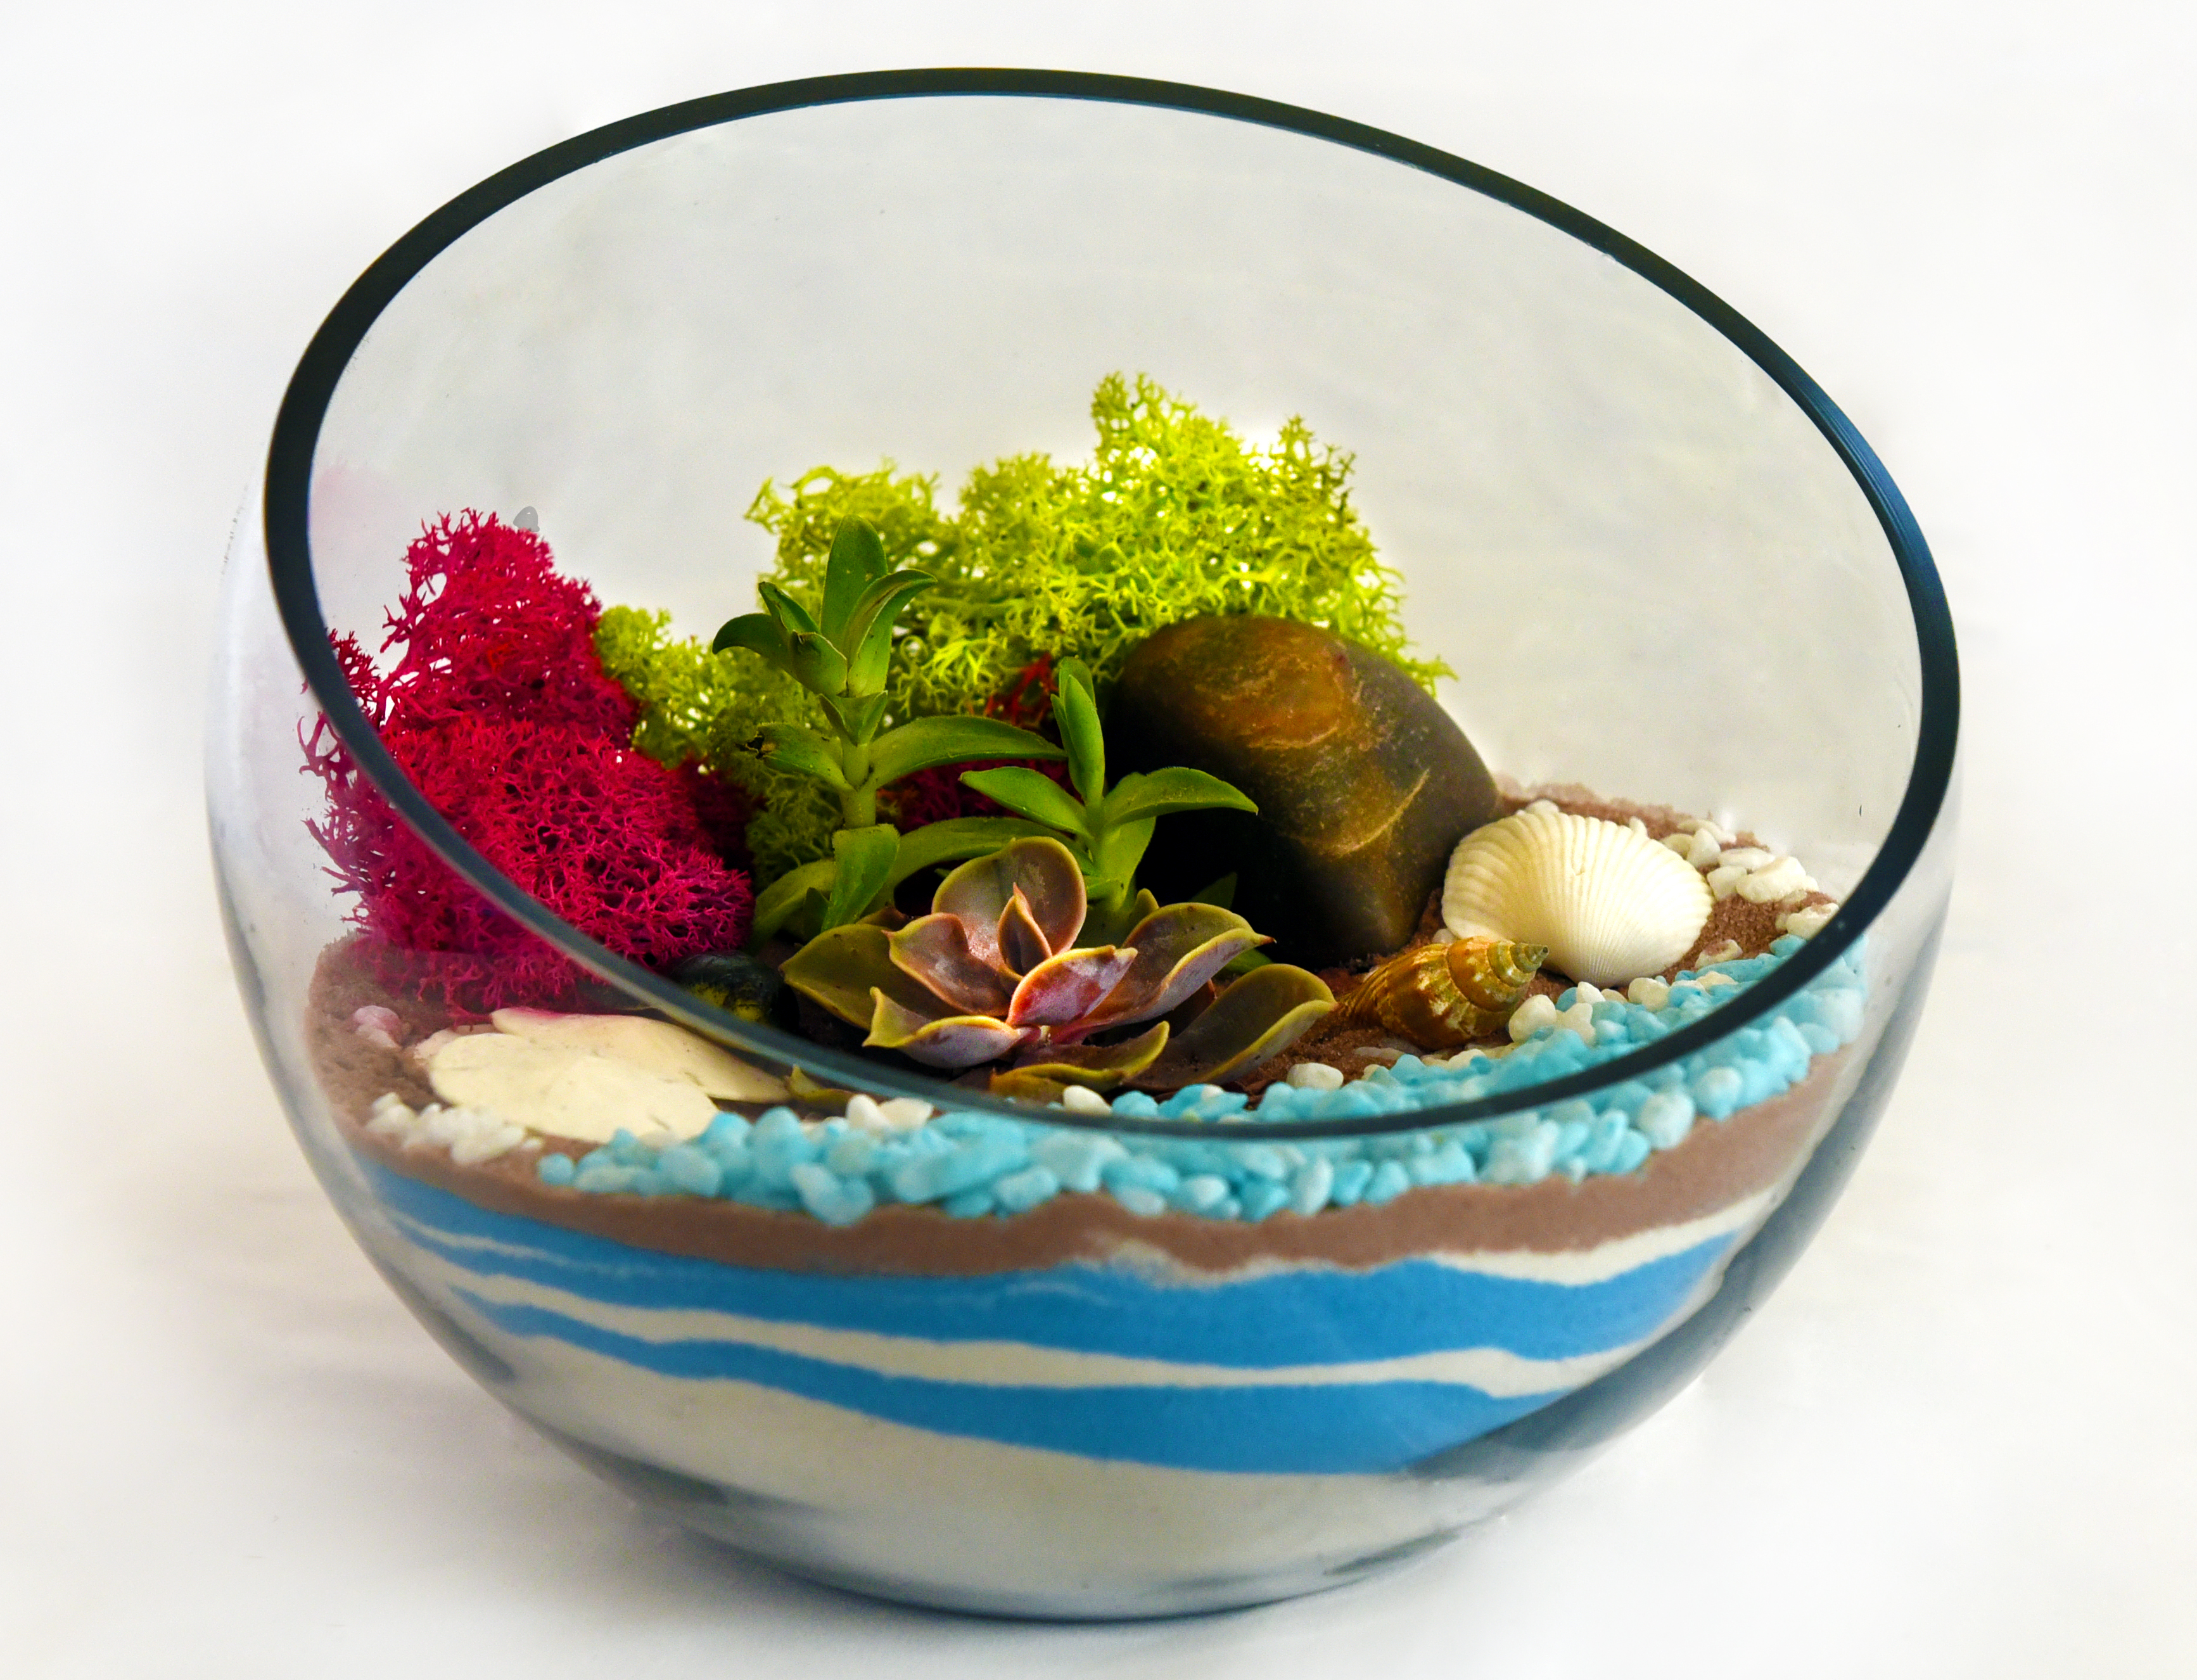 New Sloped Bowl Terrarium At Ram Brewery Bridgepark Dublin At Ram